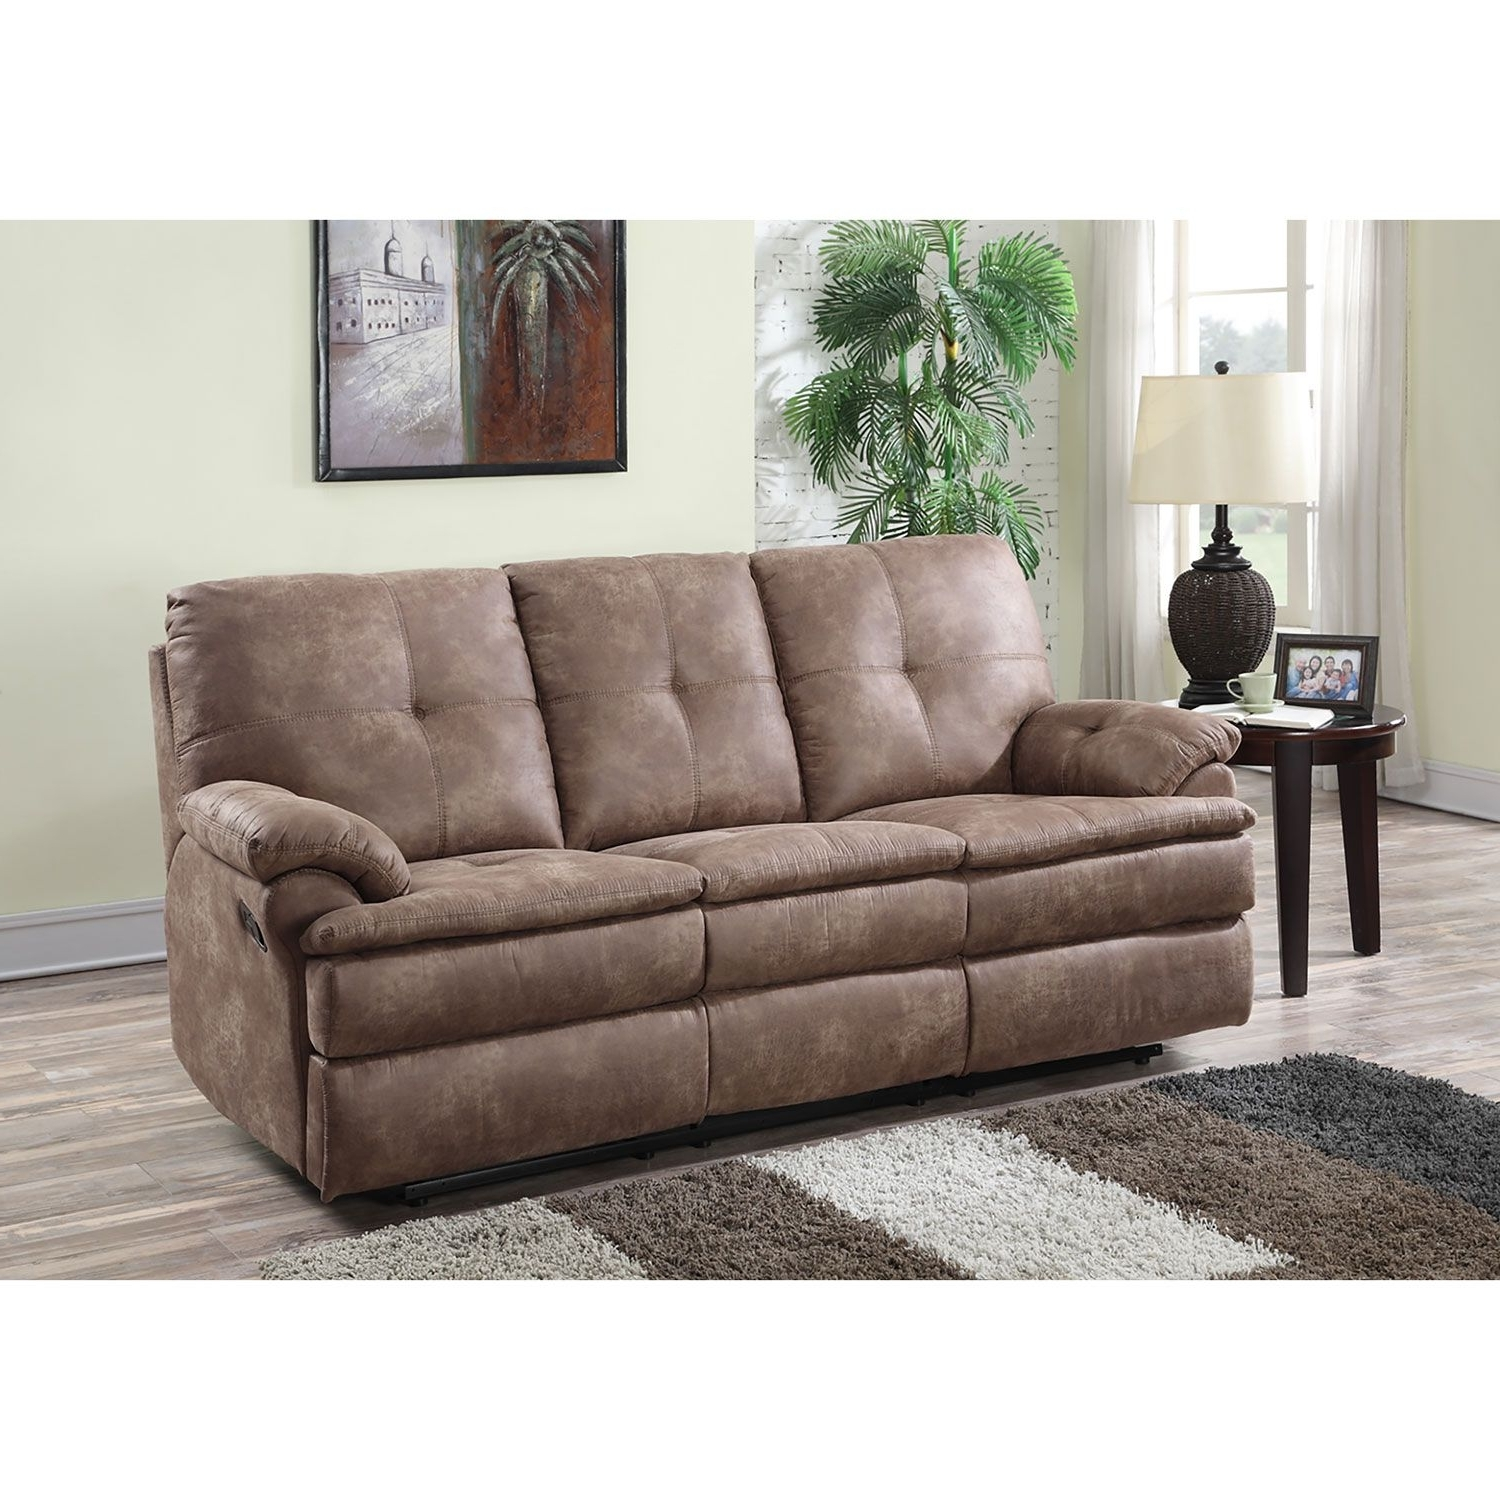 Sofa : Two Seater Fabric Recliner Sofa Fabric Reclining Sofa And For Best And Newest Sectional Sofas At Sam's Club (View 2 of 15)